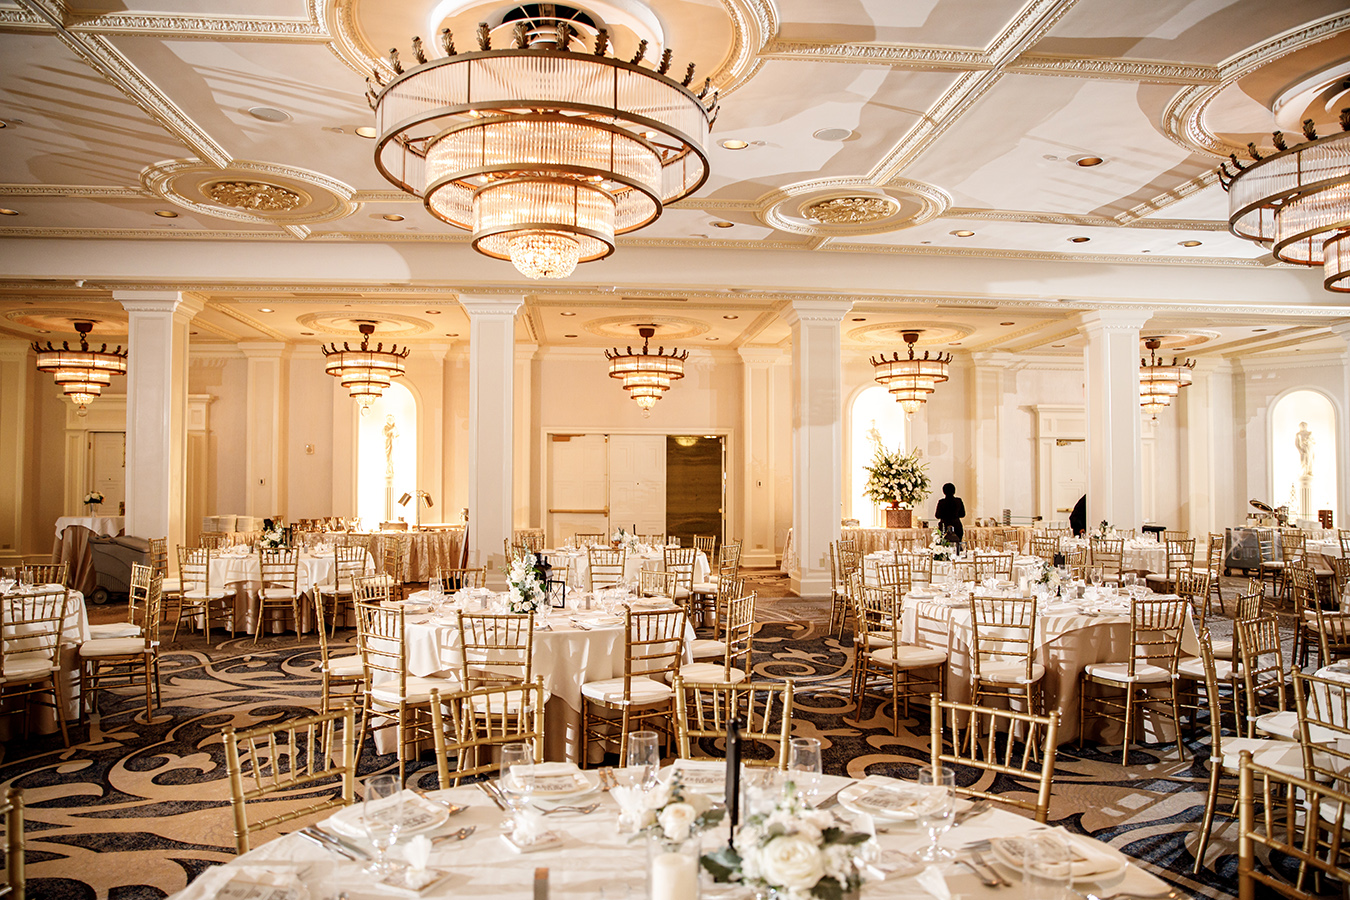 The couple chose the Waldorf Astoria Ballroom at the Roosevelt Hotel for their wedding reception.